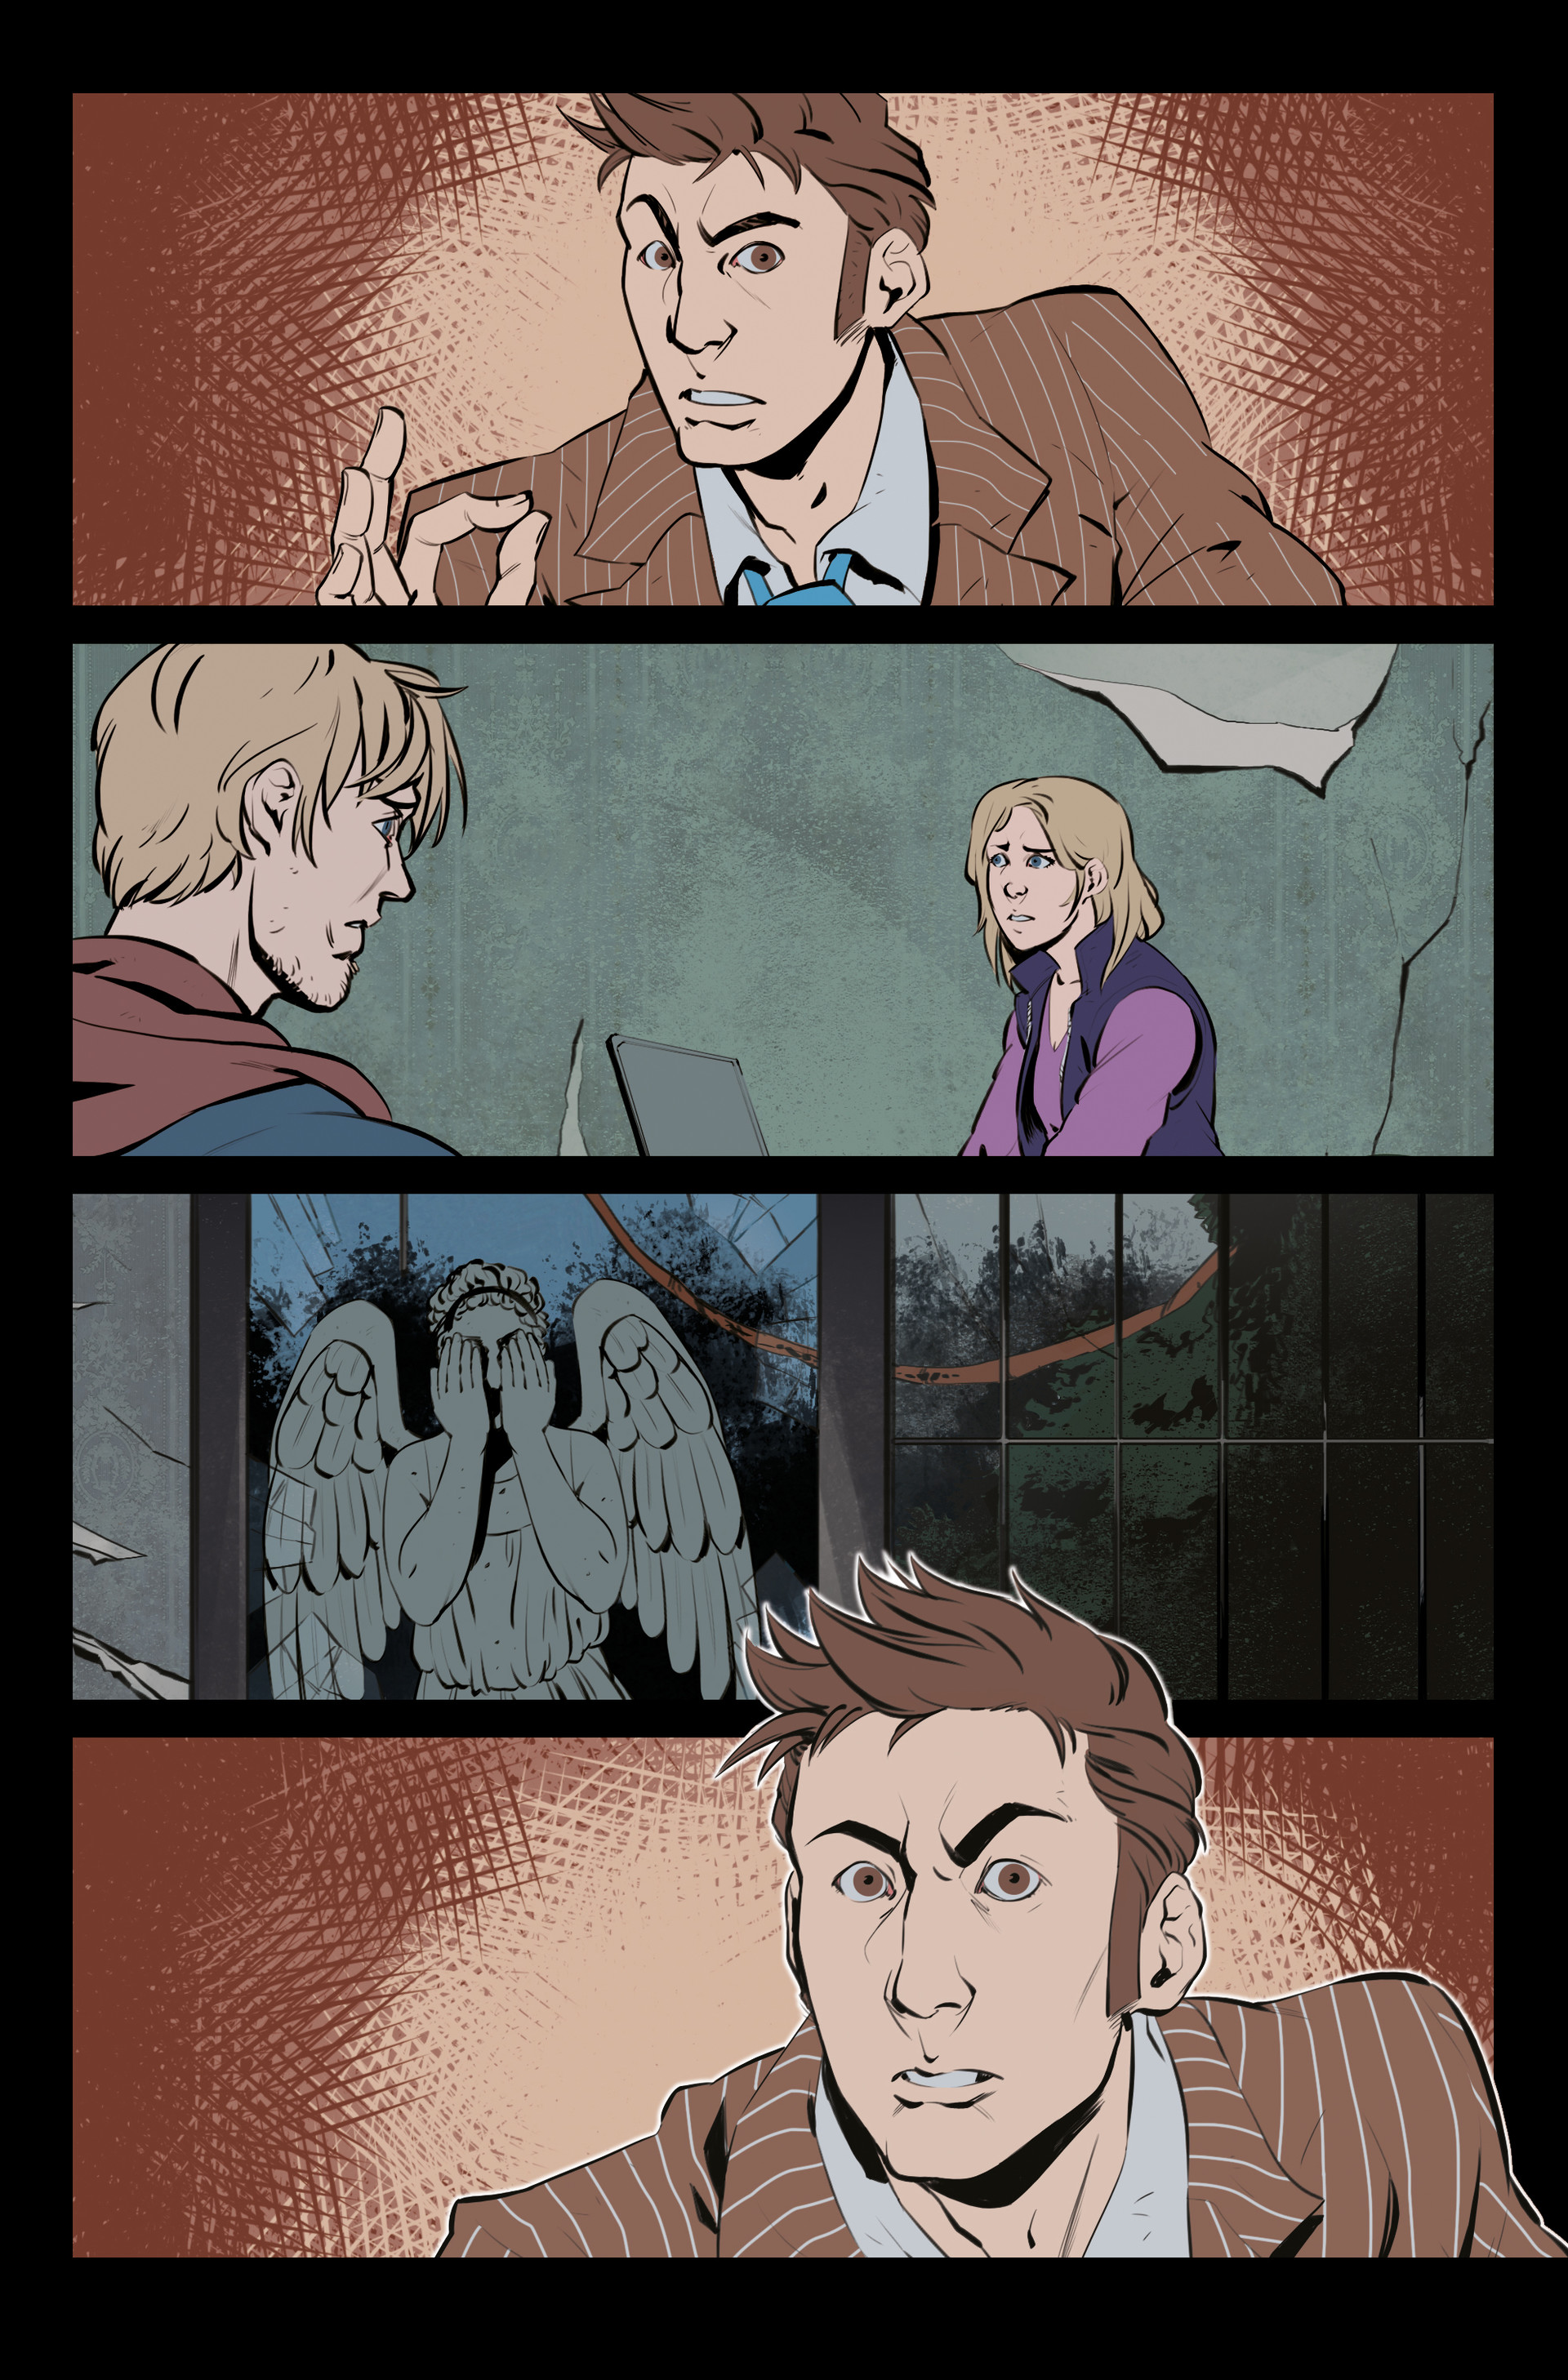 Claudia cocci doctor who page 01 new flat